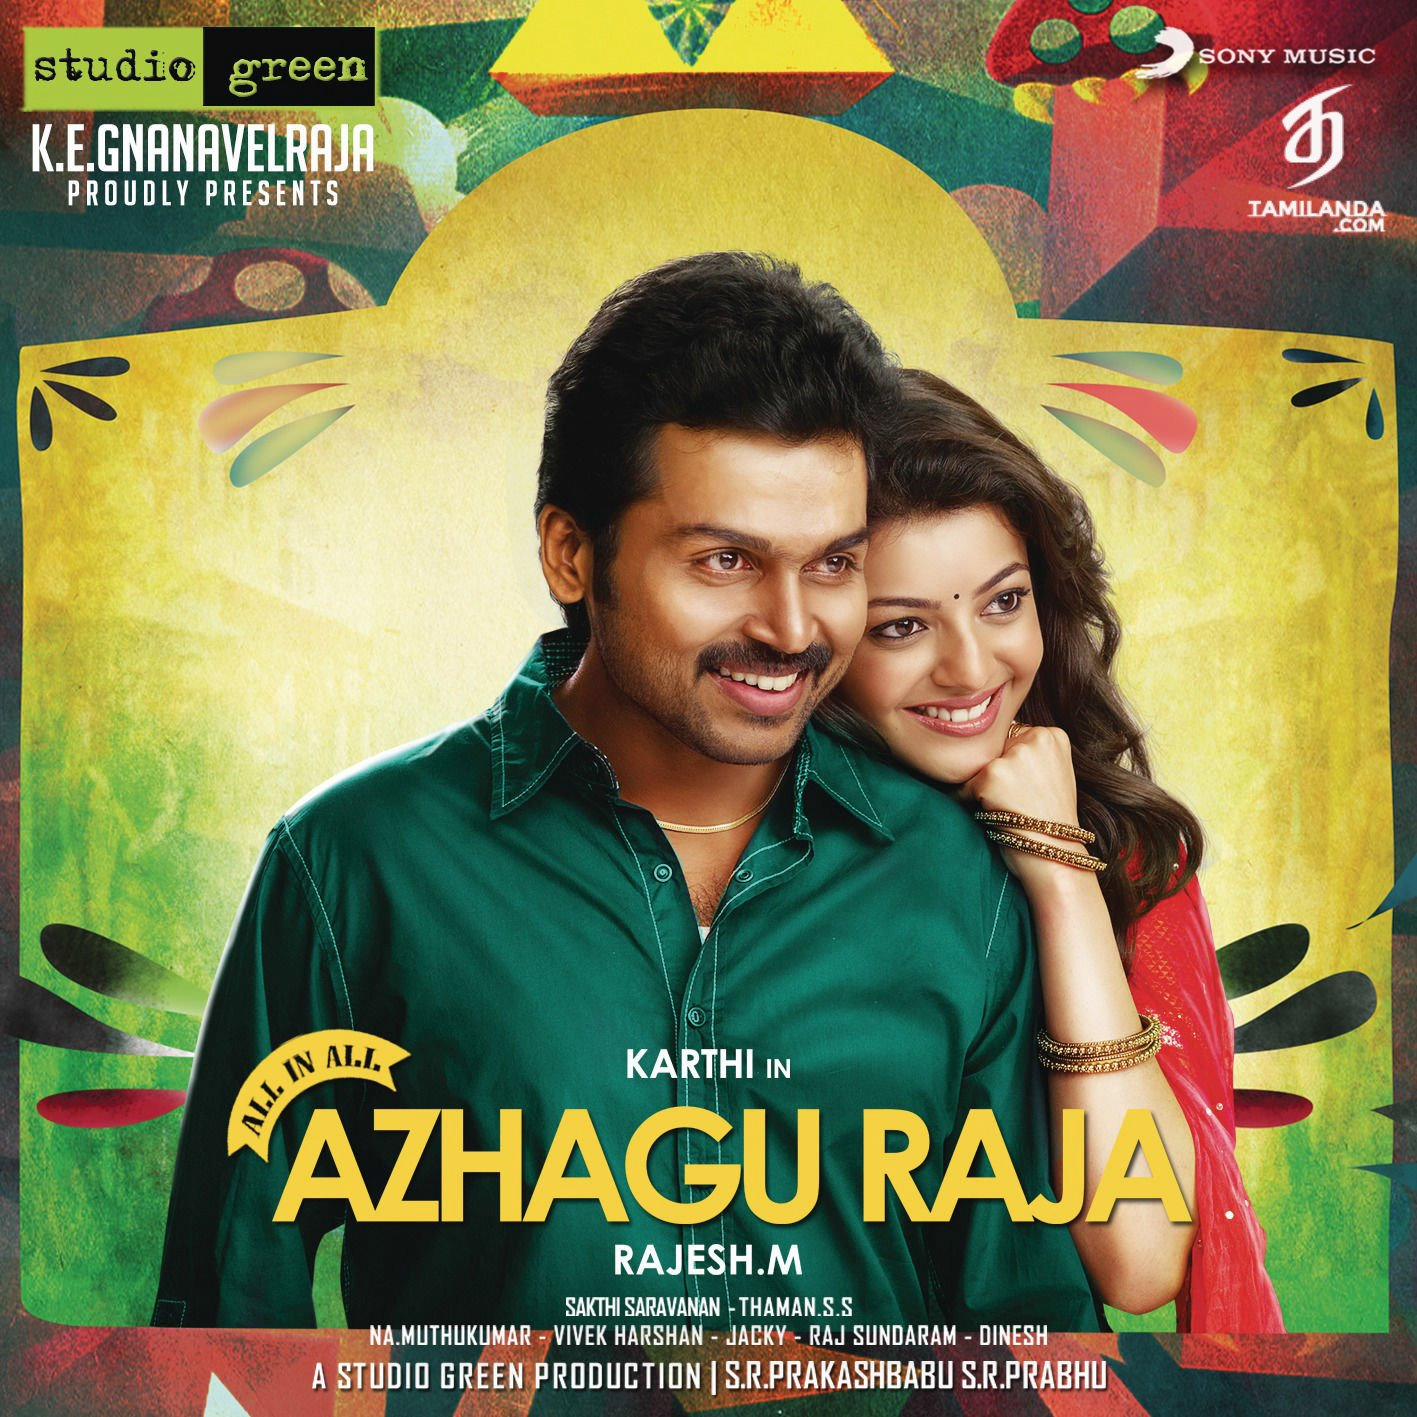 All in All Azhagu Raja FLAC Songs